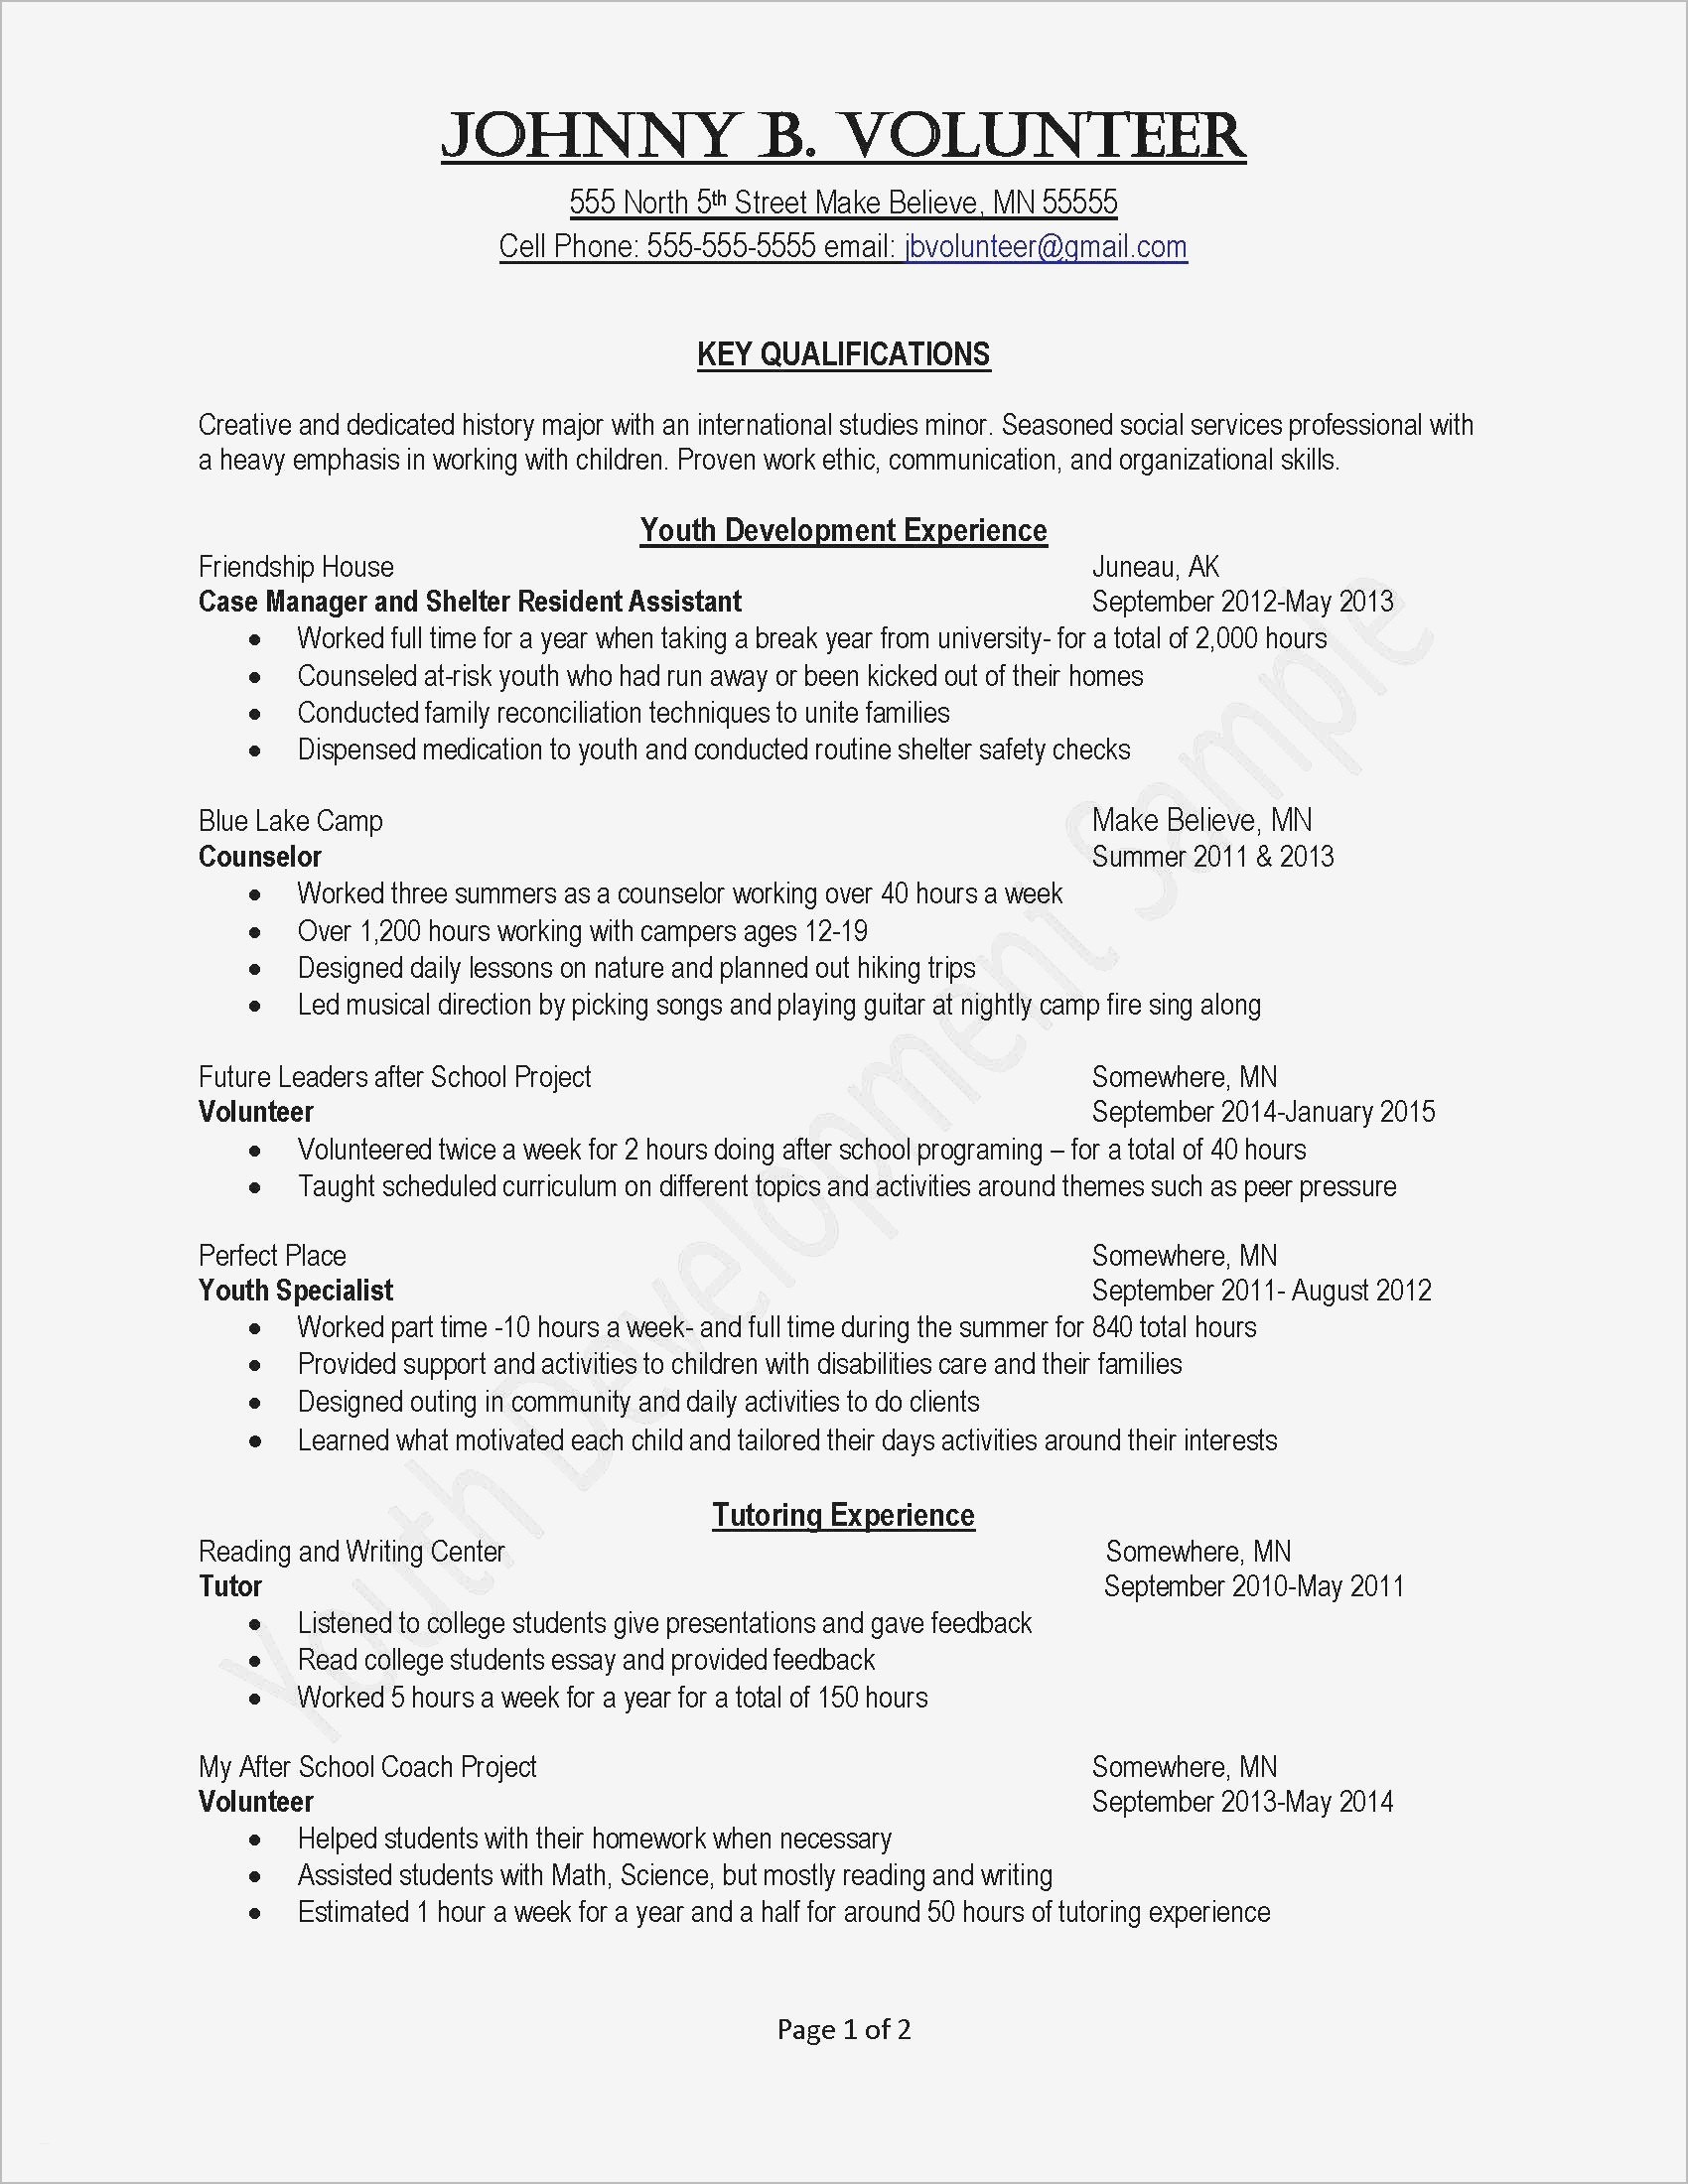 Cover Letter Template 2018 - Job Fer Letter Template Us Copy Od Consultant Cover Letter Fungram